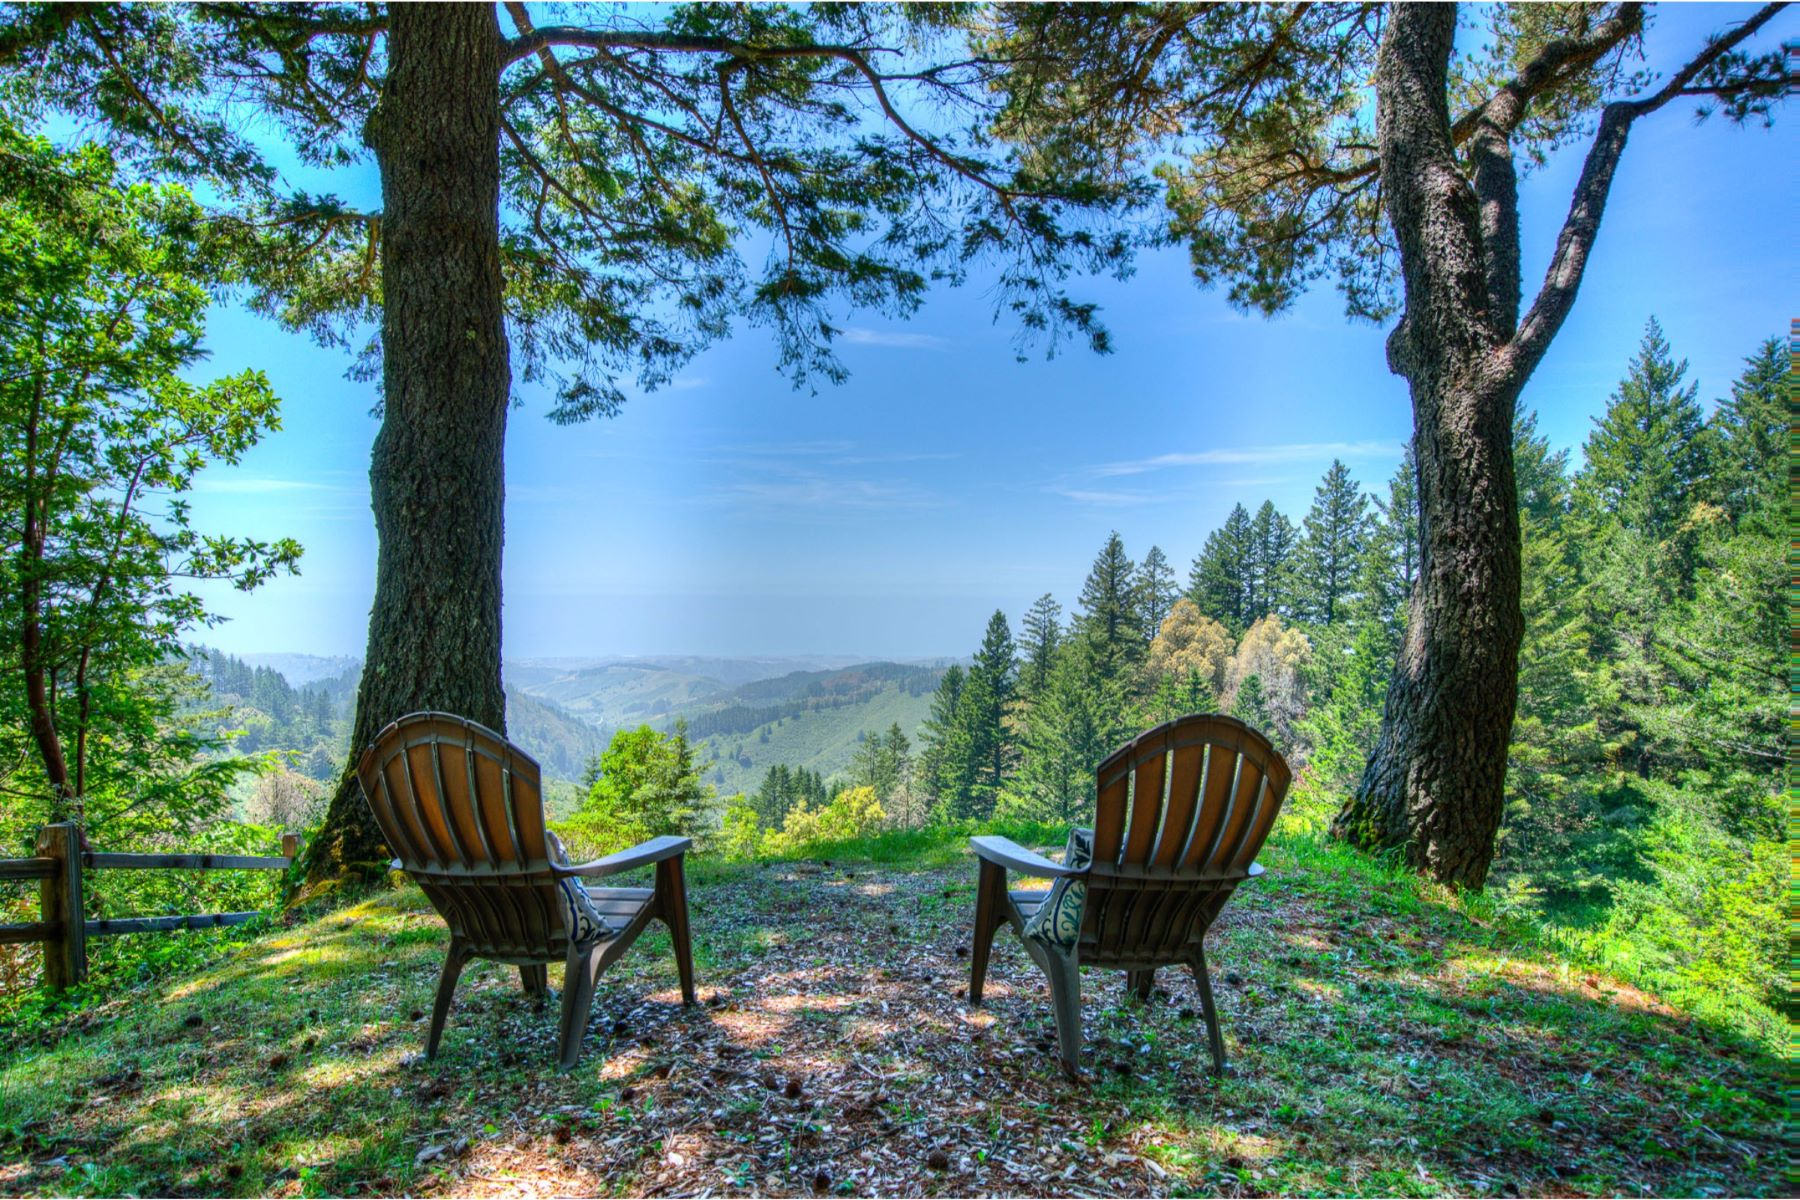 Single Family Home for Sale at 12970 Skyline Blvd. Woodside, California 94062 United States